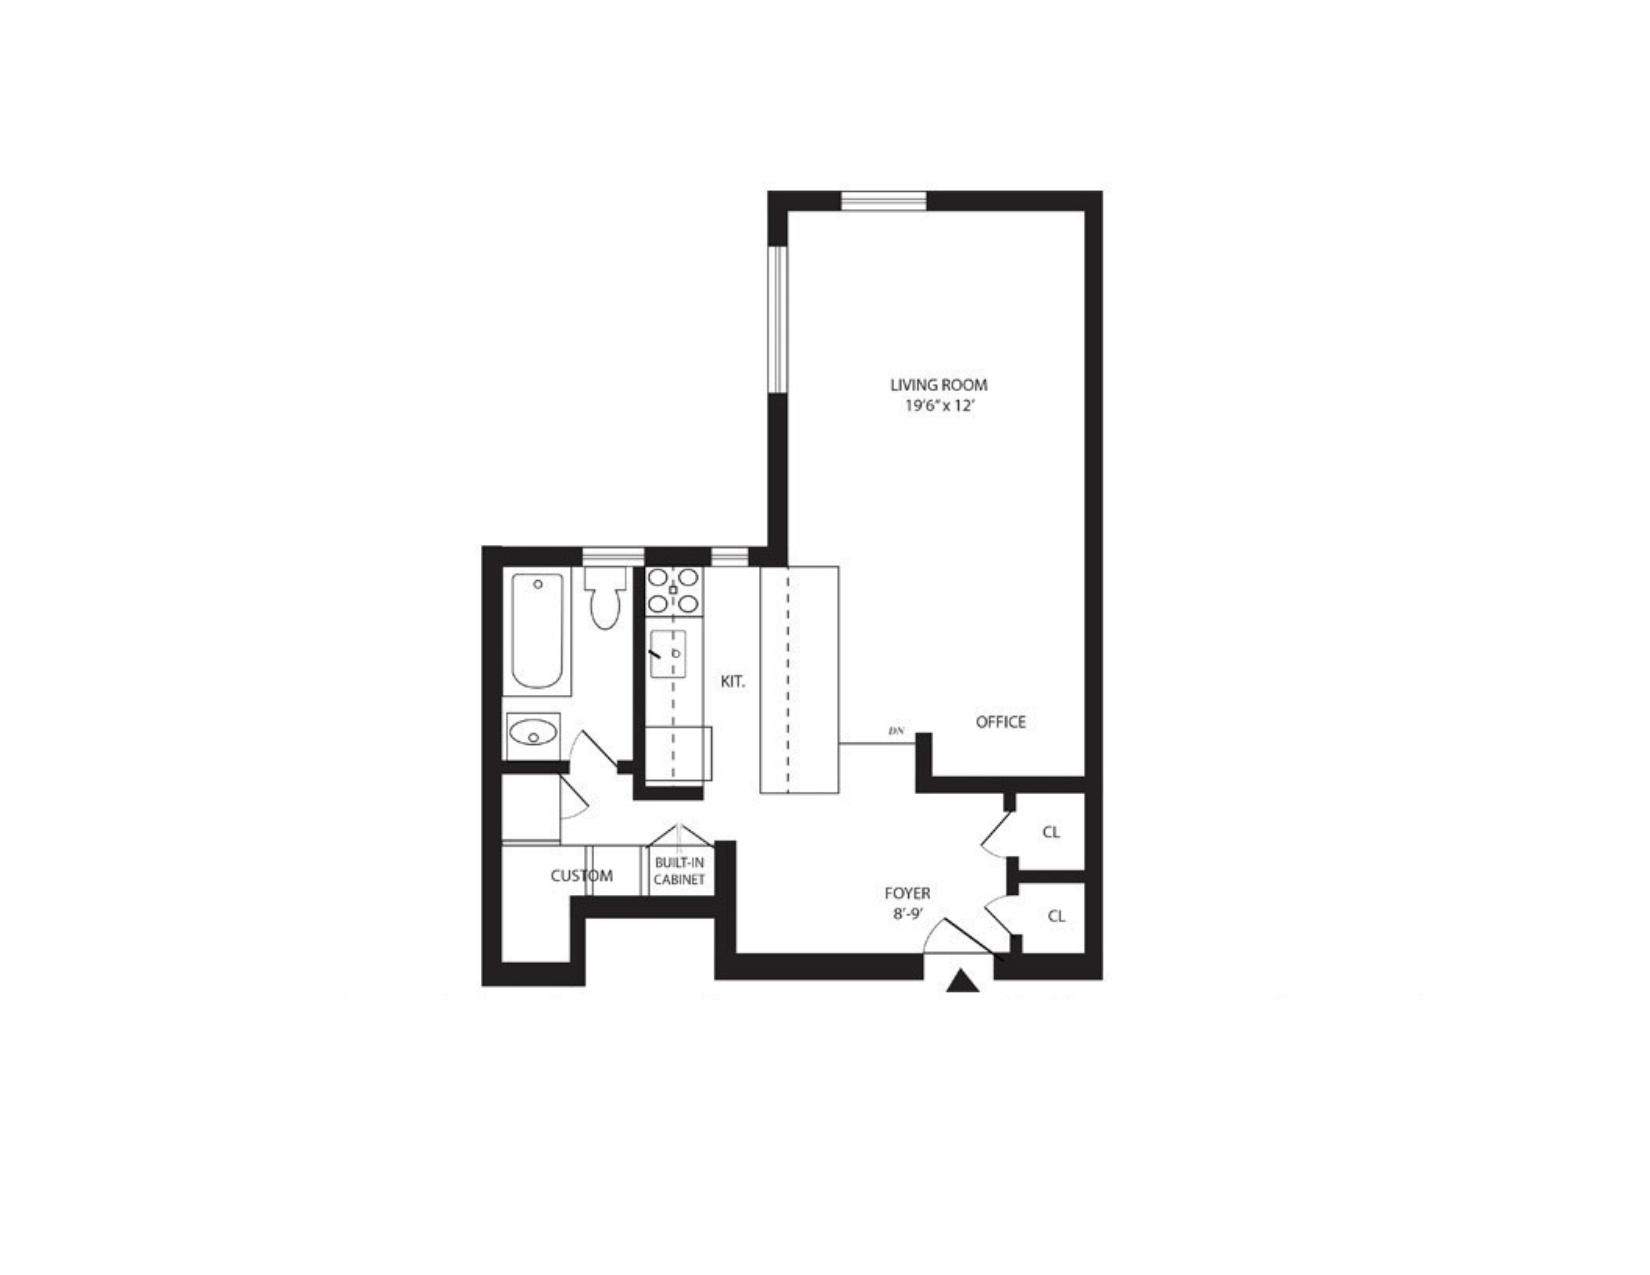 305 West 52nd Street, New York, New York, New York, United States 10019, ,1 BathroomBathrooms,Condo,For Rent,West 52nd Street,1142